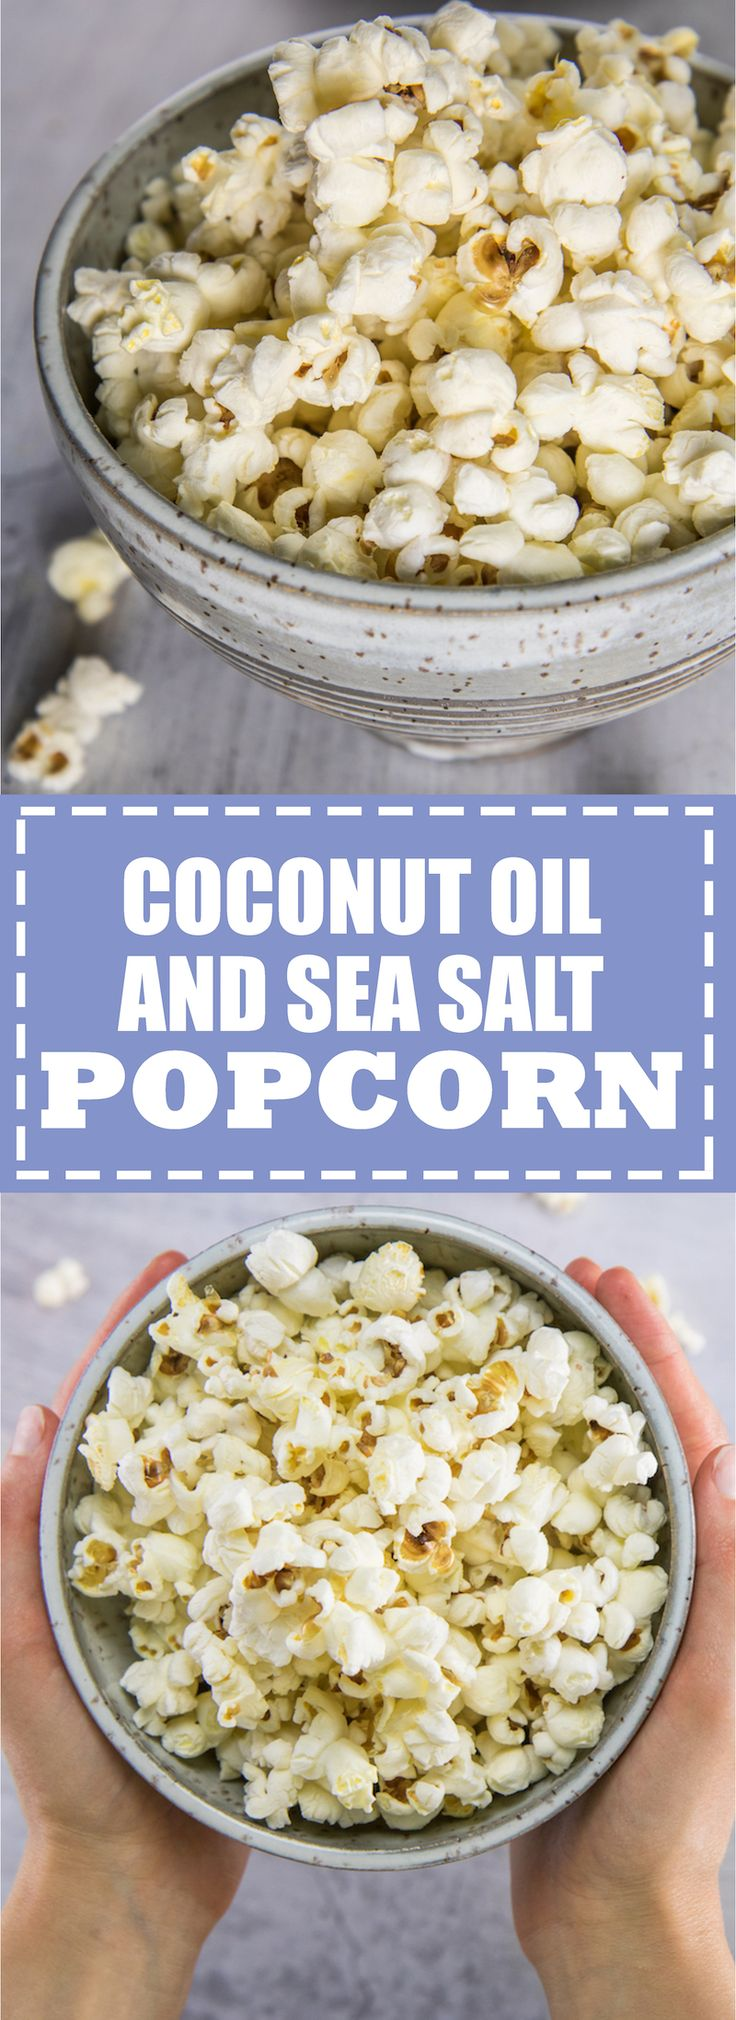 Make a batch of this 3-ingredient popcorn the next time you watch a movie! Easy and delicious and no added chemicals or preservatives! (Vegan & gluten-free)